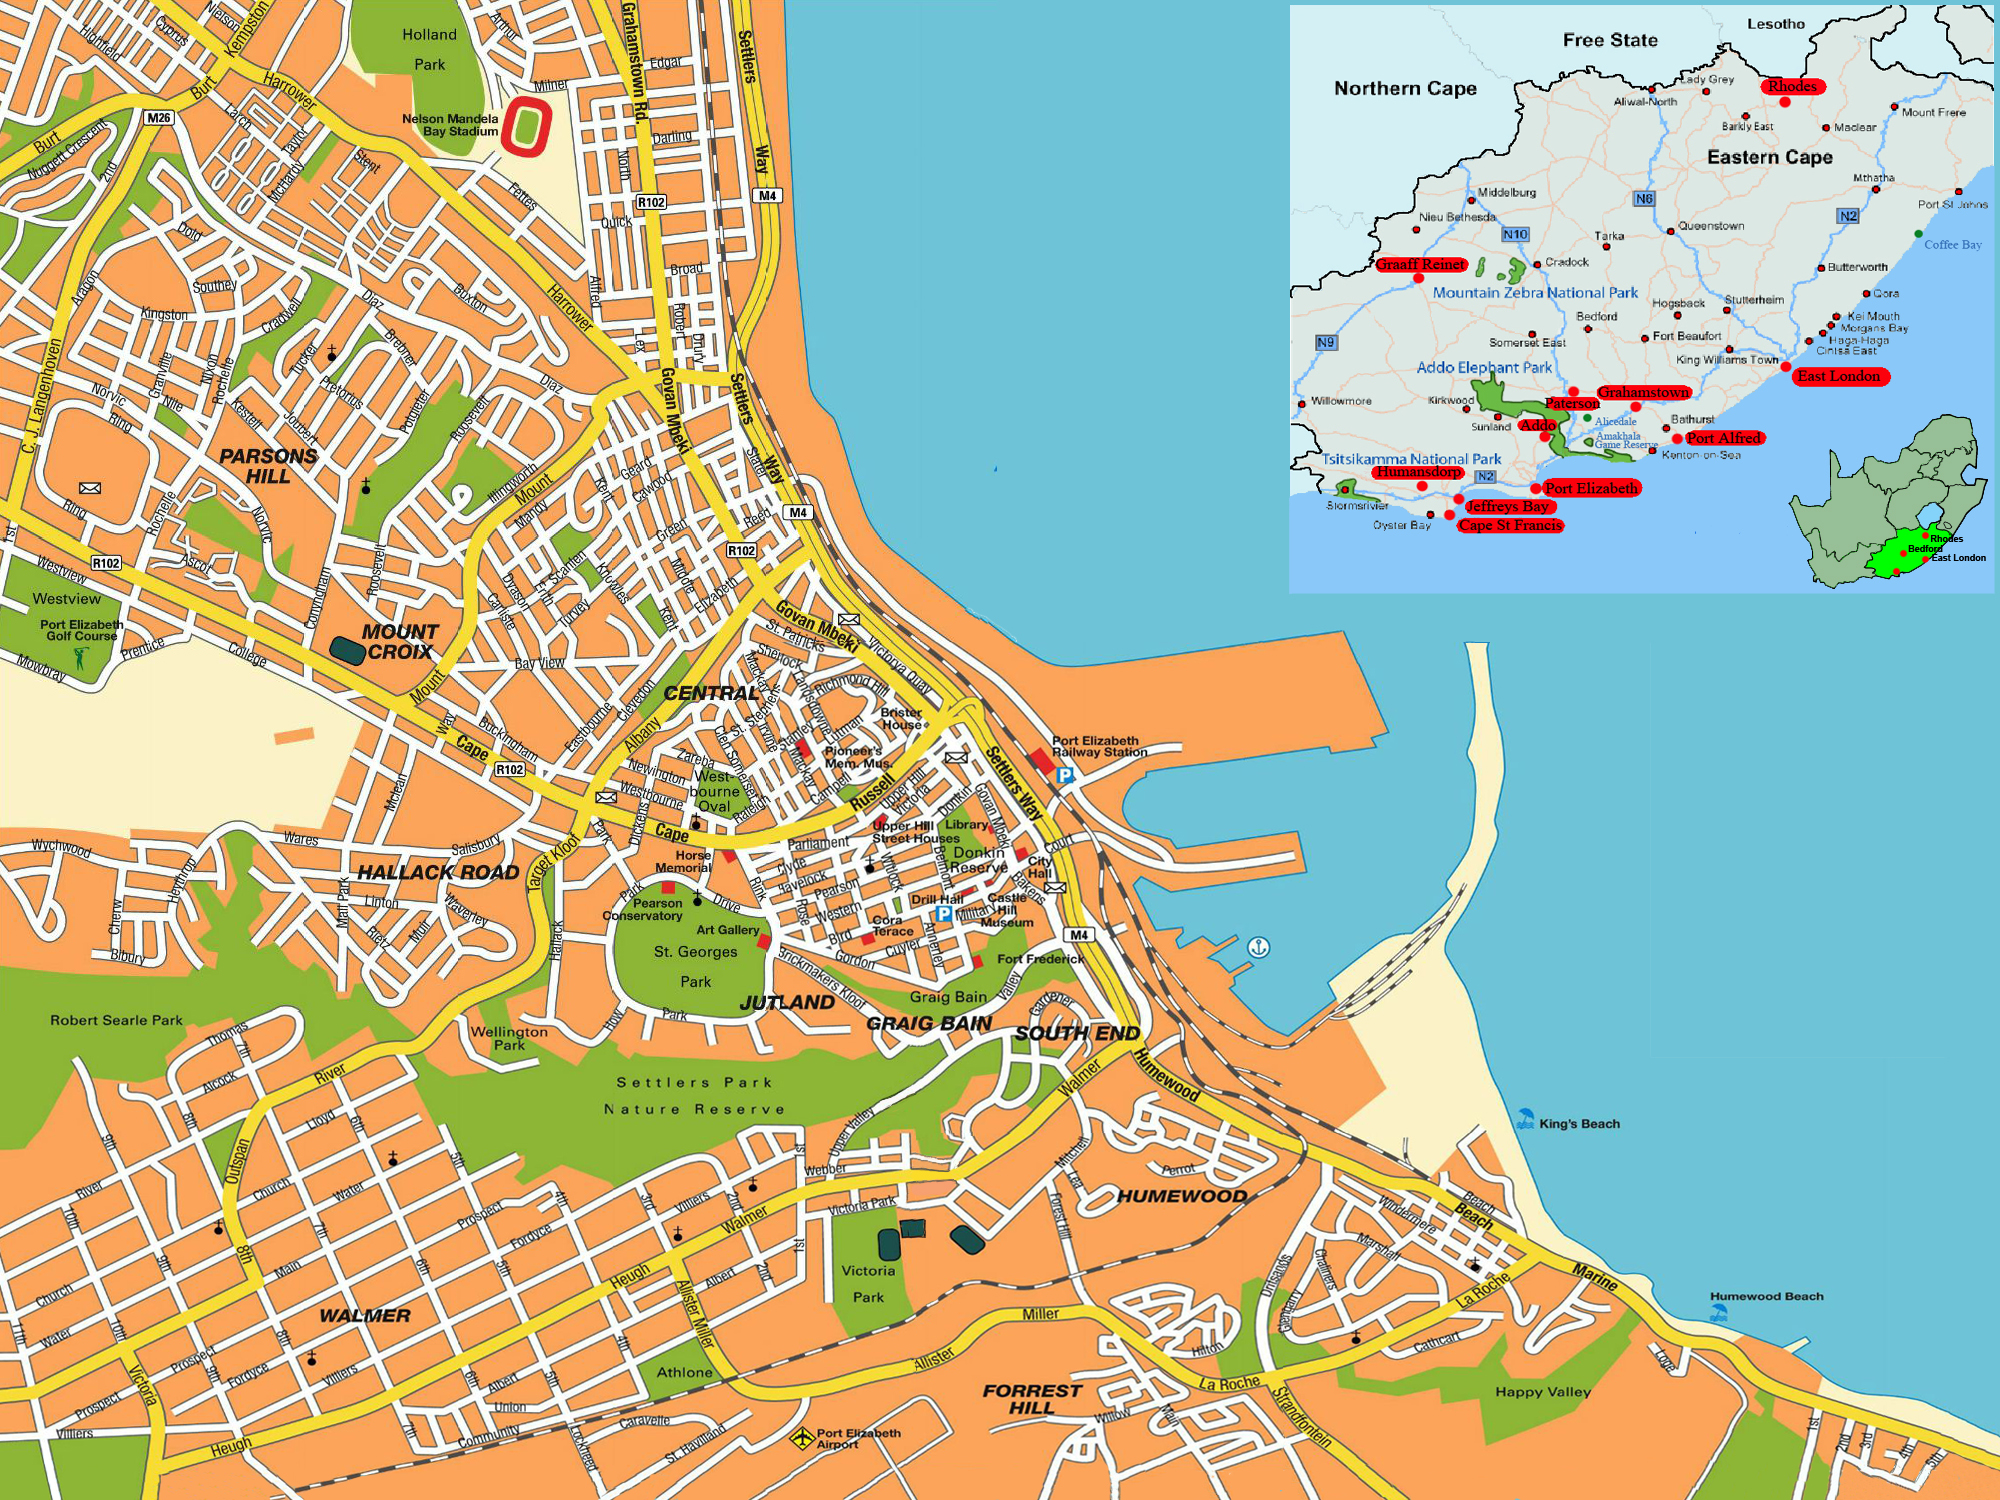 Port Elizabeth street map